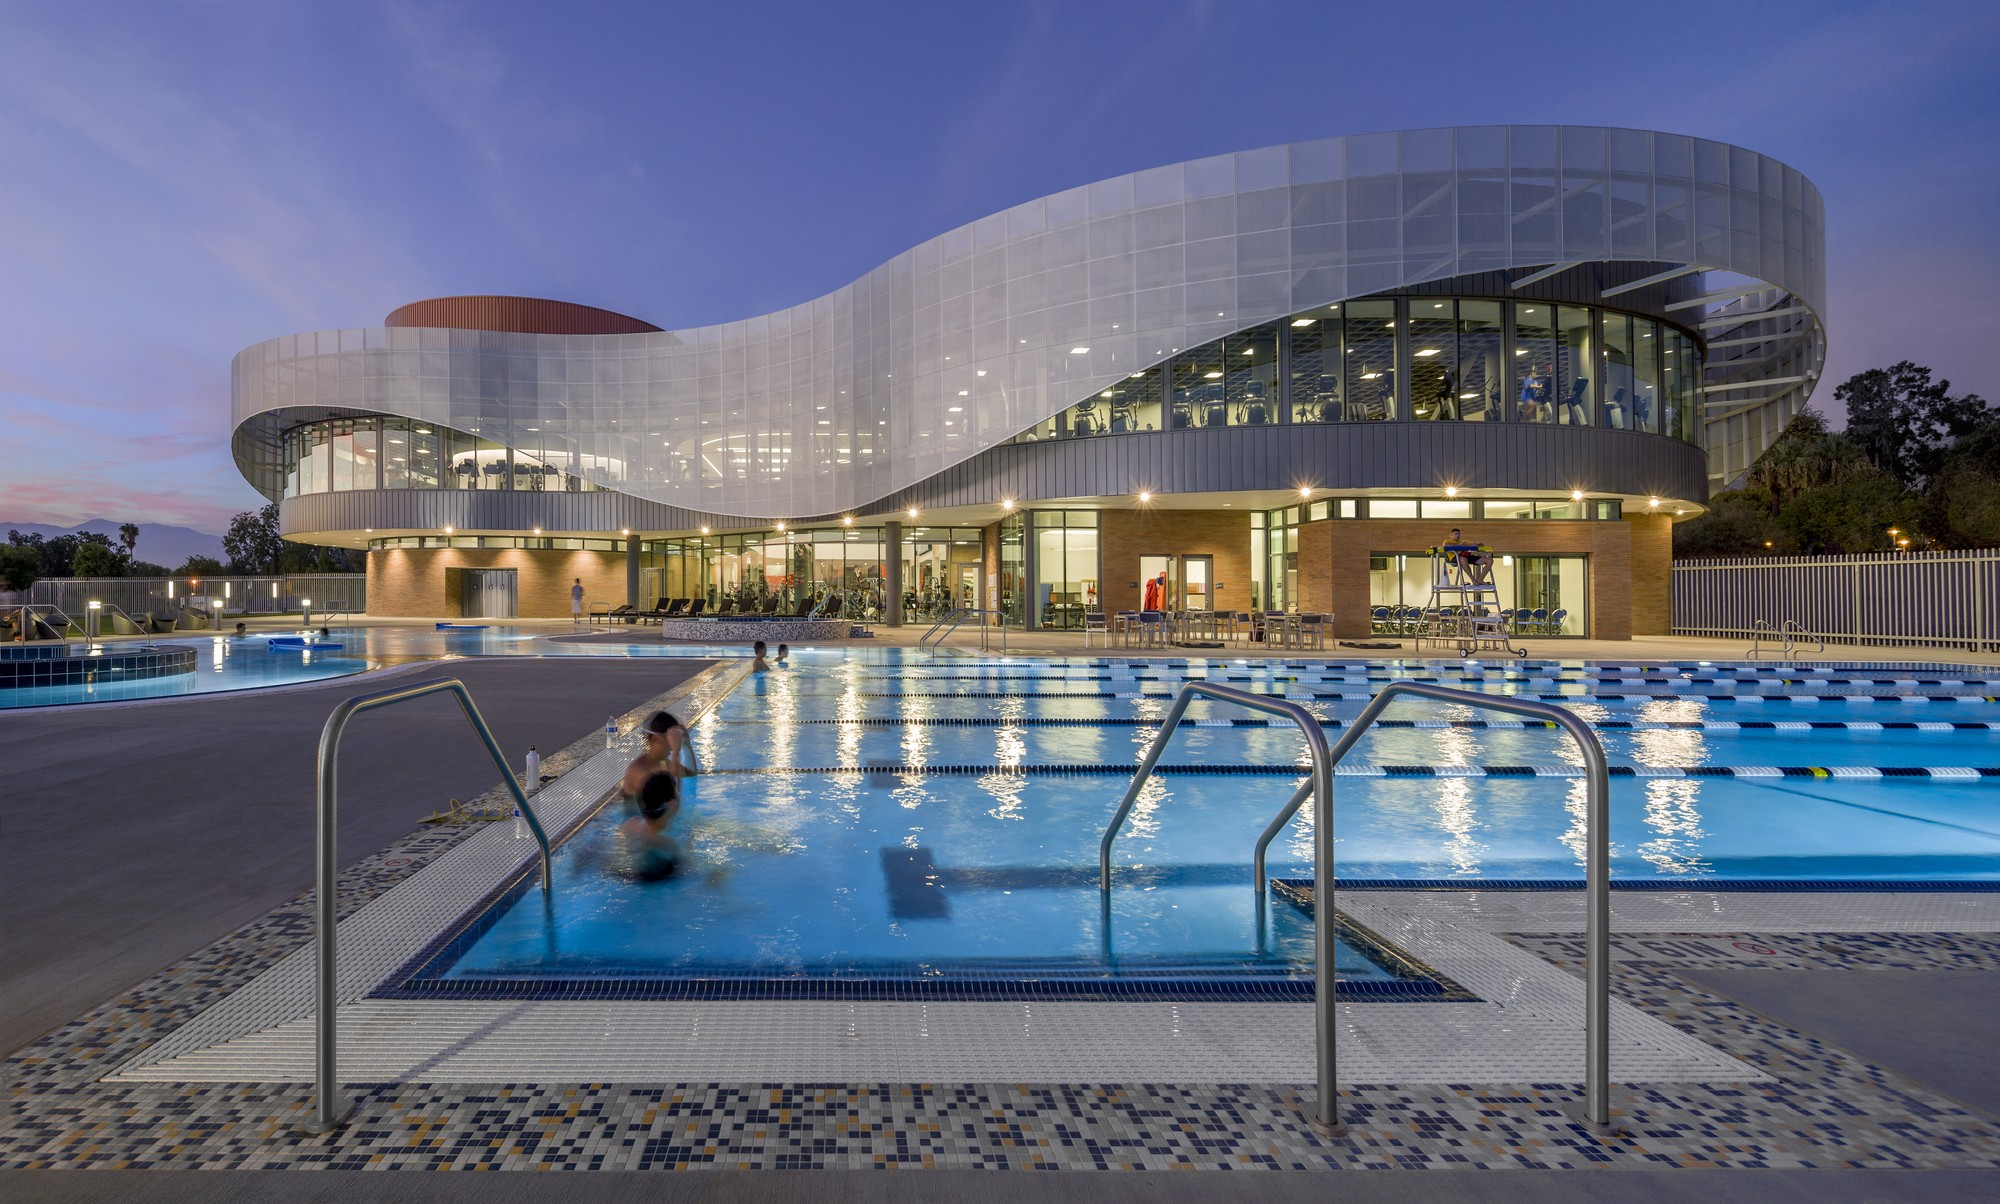 UC Riverside Student Recreation Center. Image © Timmerman Photography, Inc.